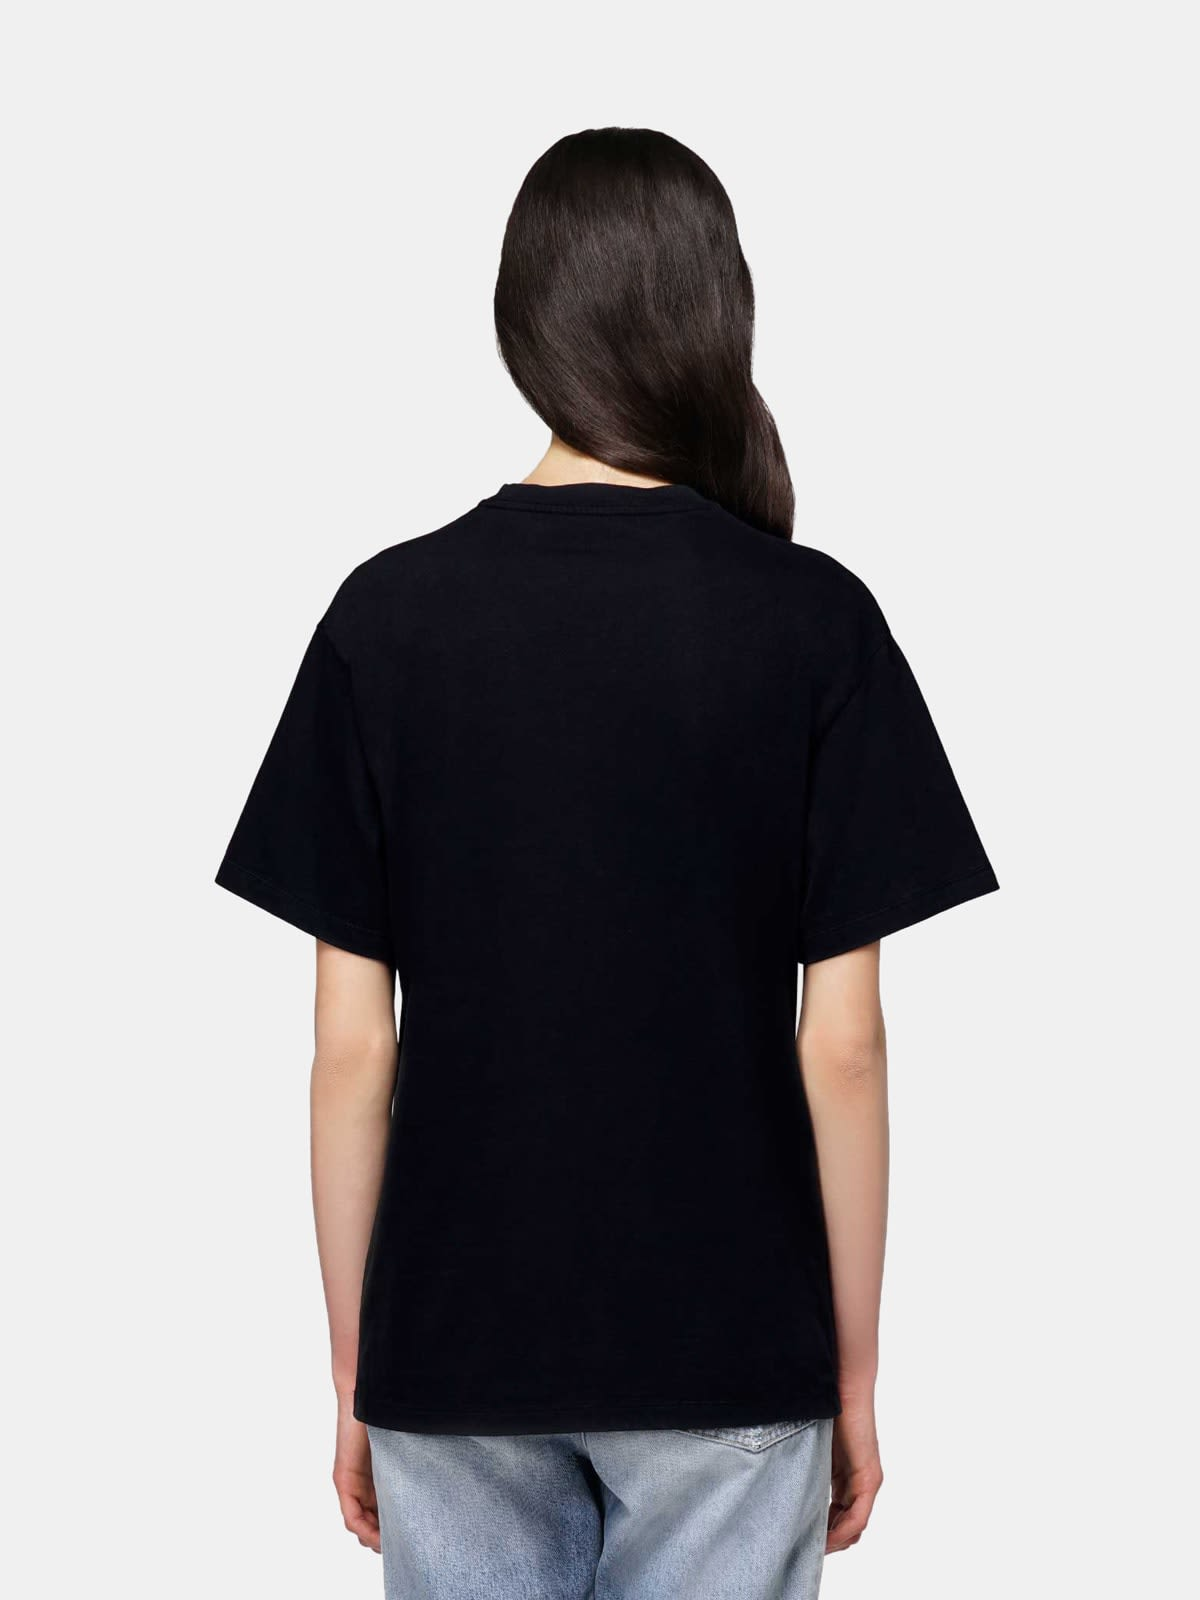 Black Golden T-shirt with flag print